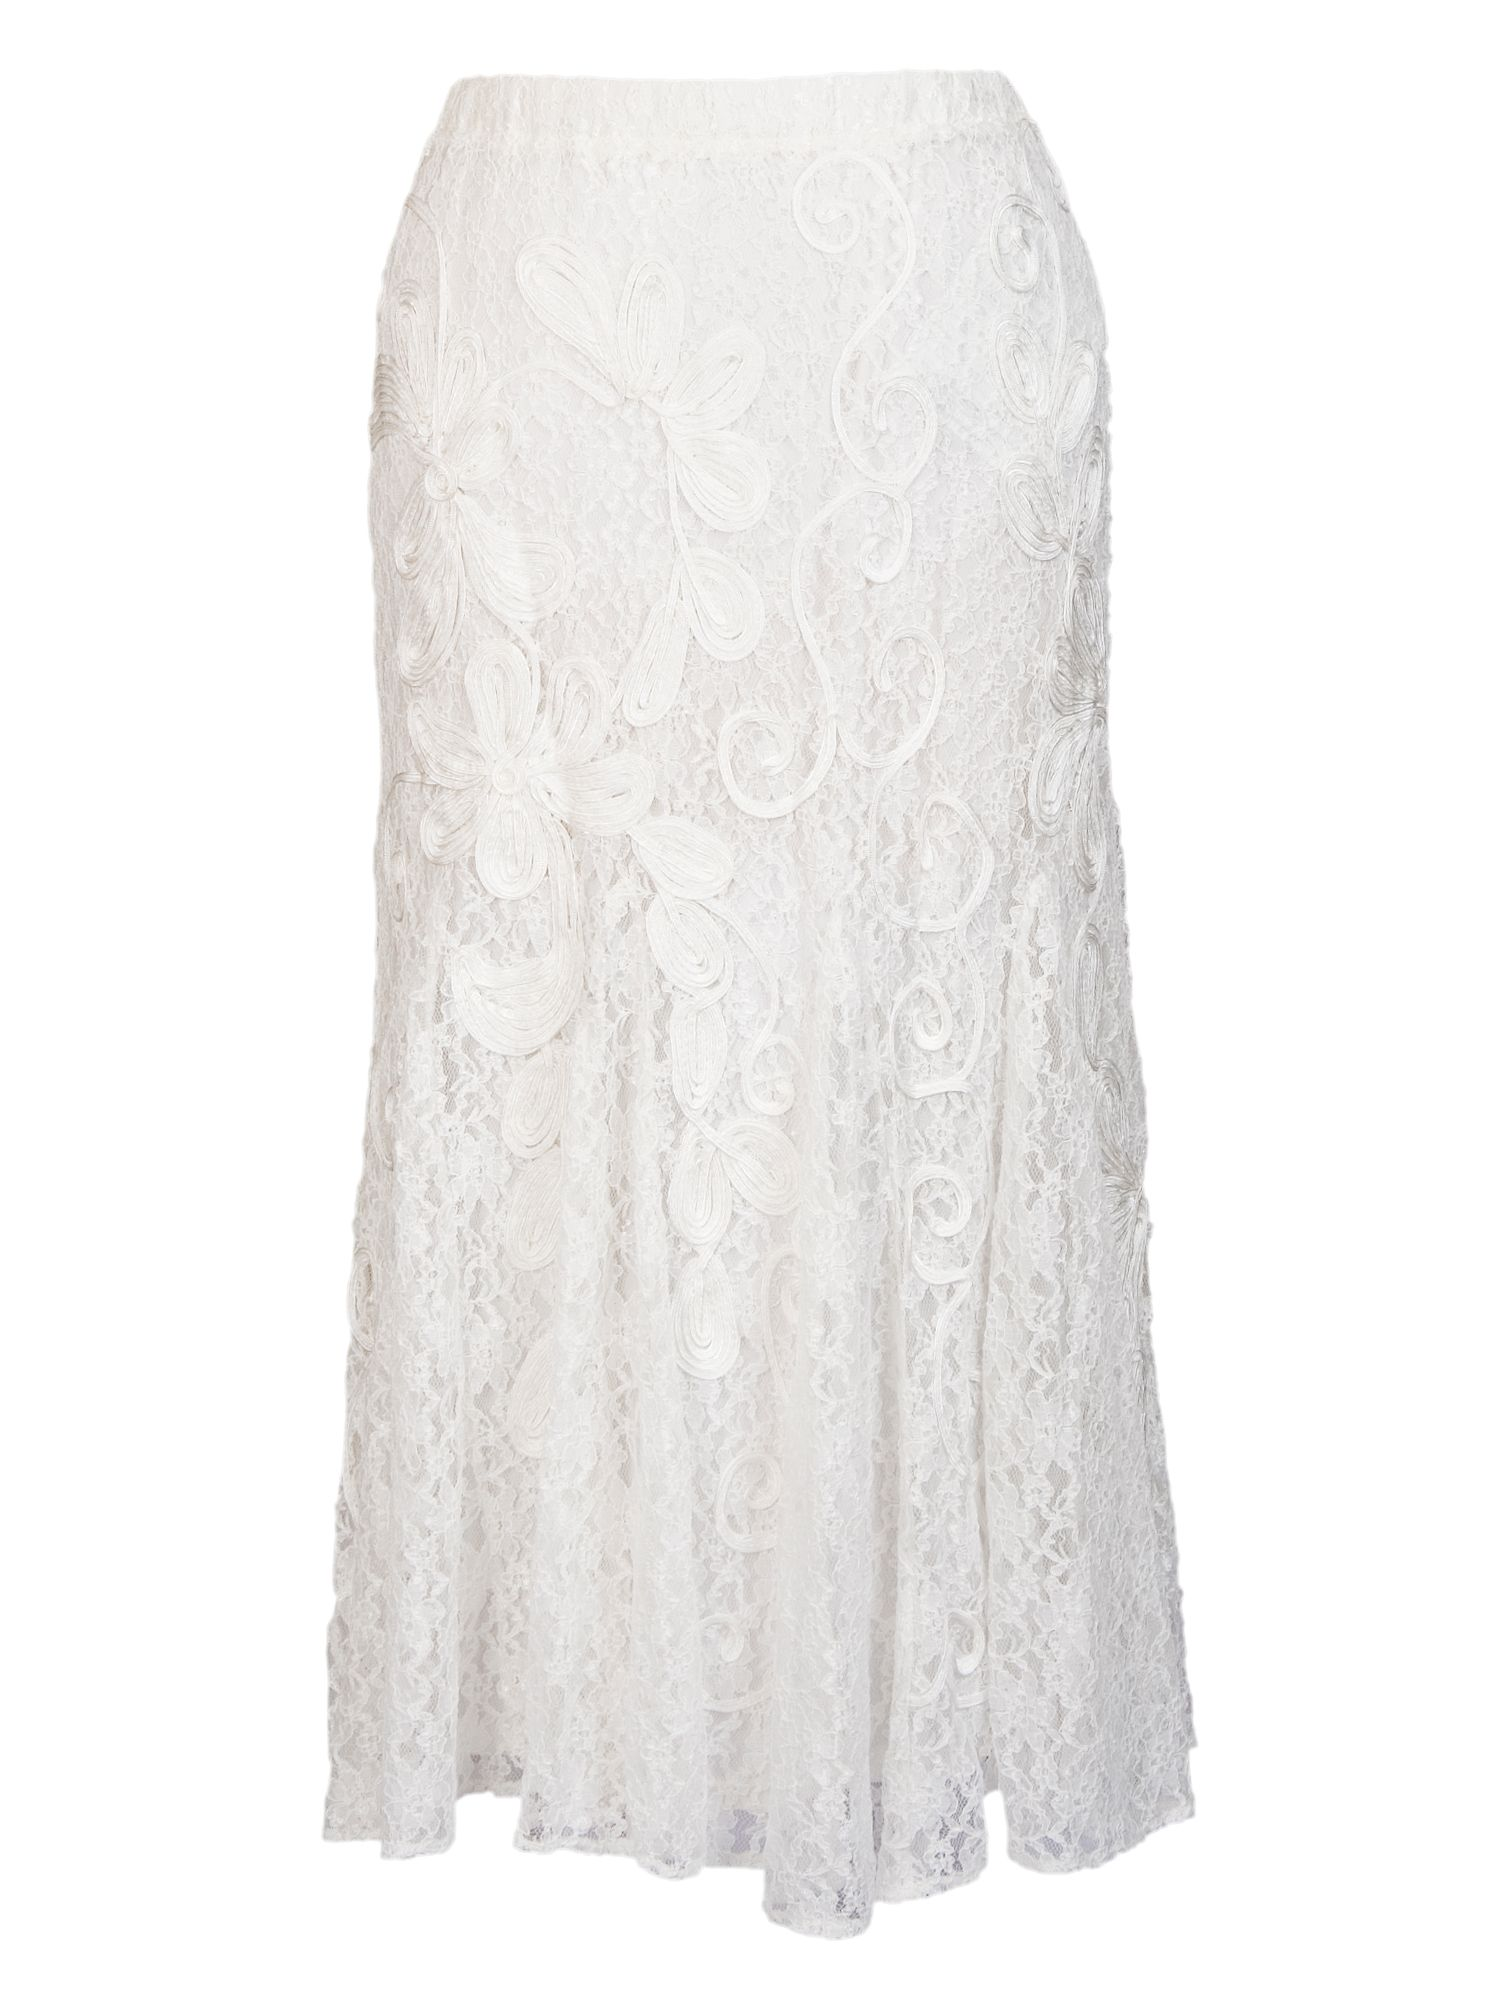 Cornelli trimmed lace skirt